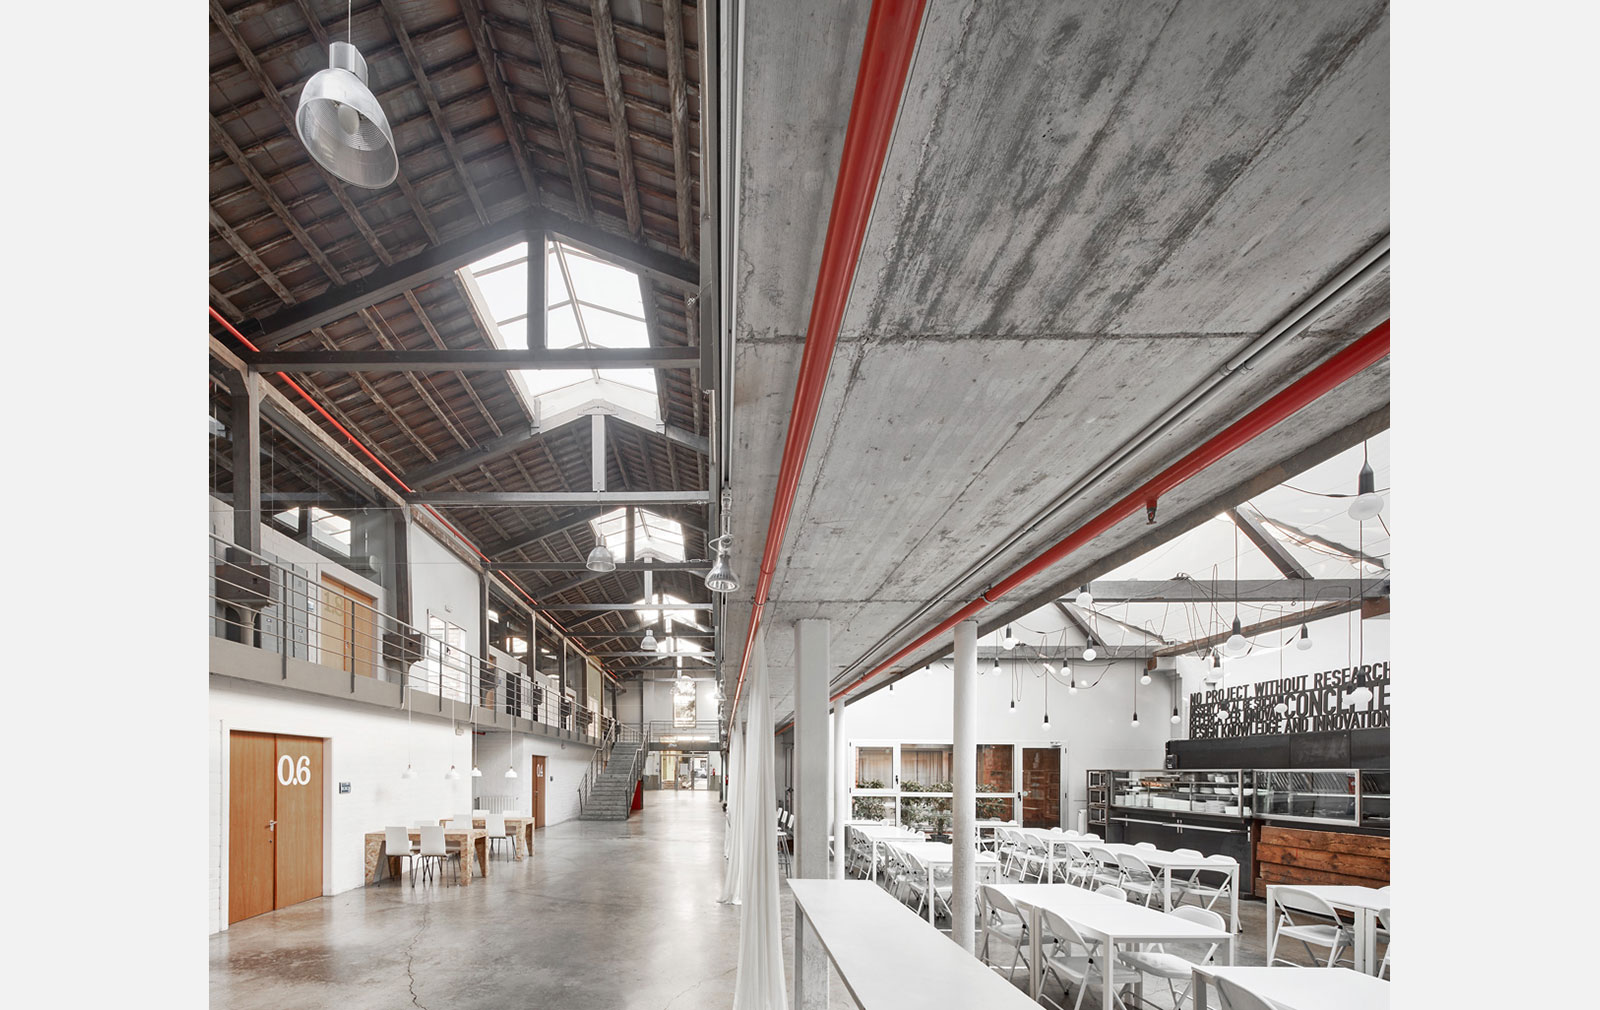 Bau School of Design in Poblenou, Barcelona